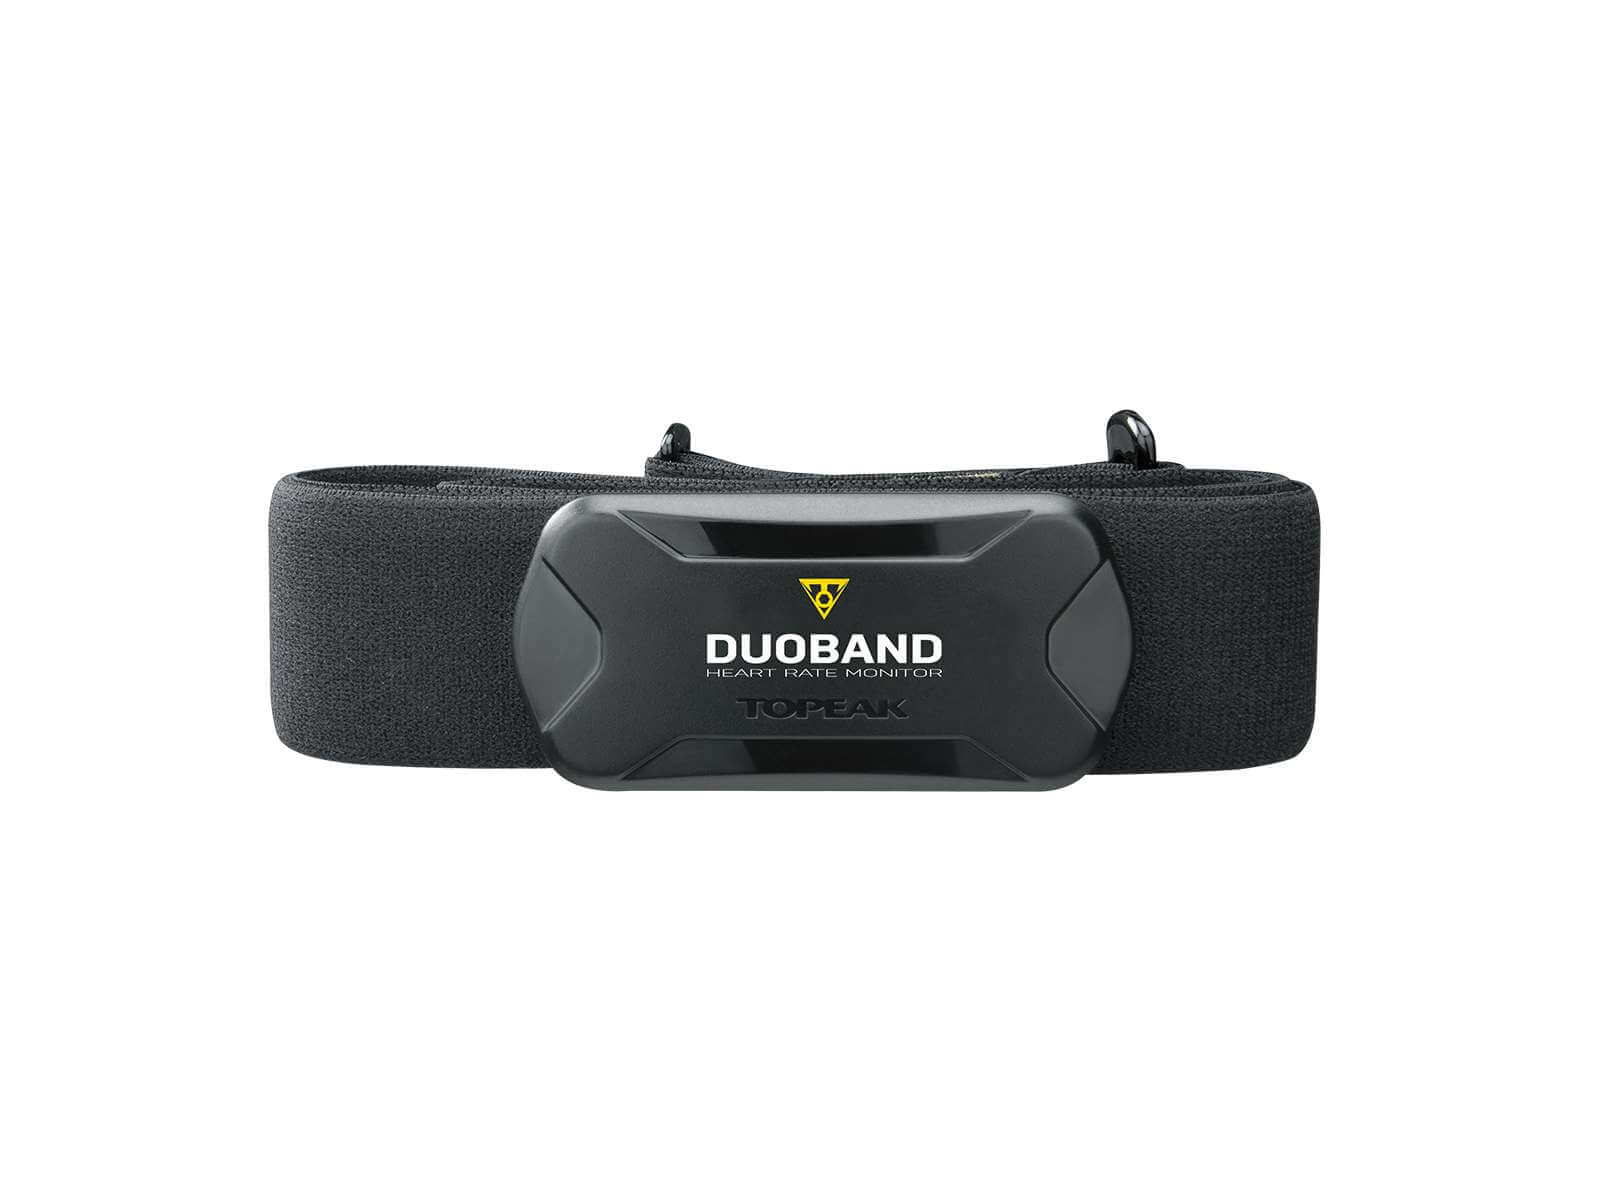 DUOBAND HEART RATE MONITOR  Works w/ devices using